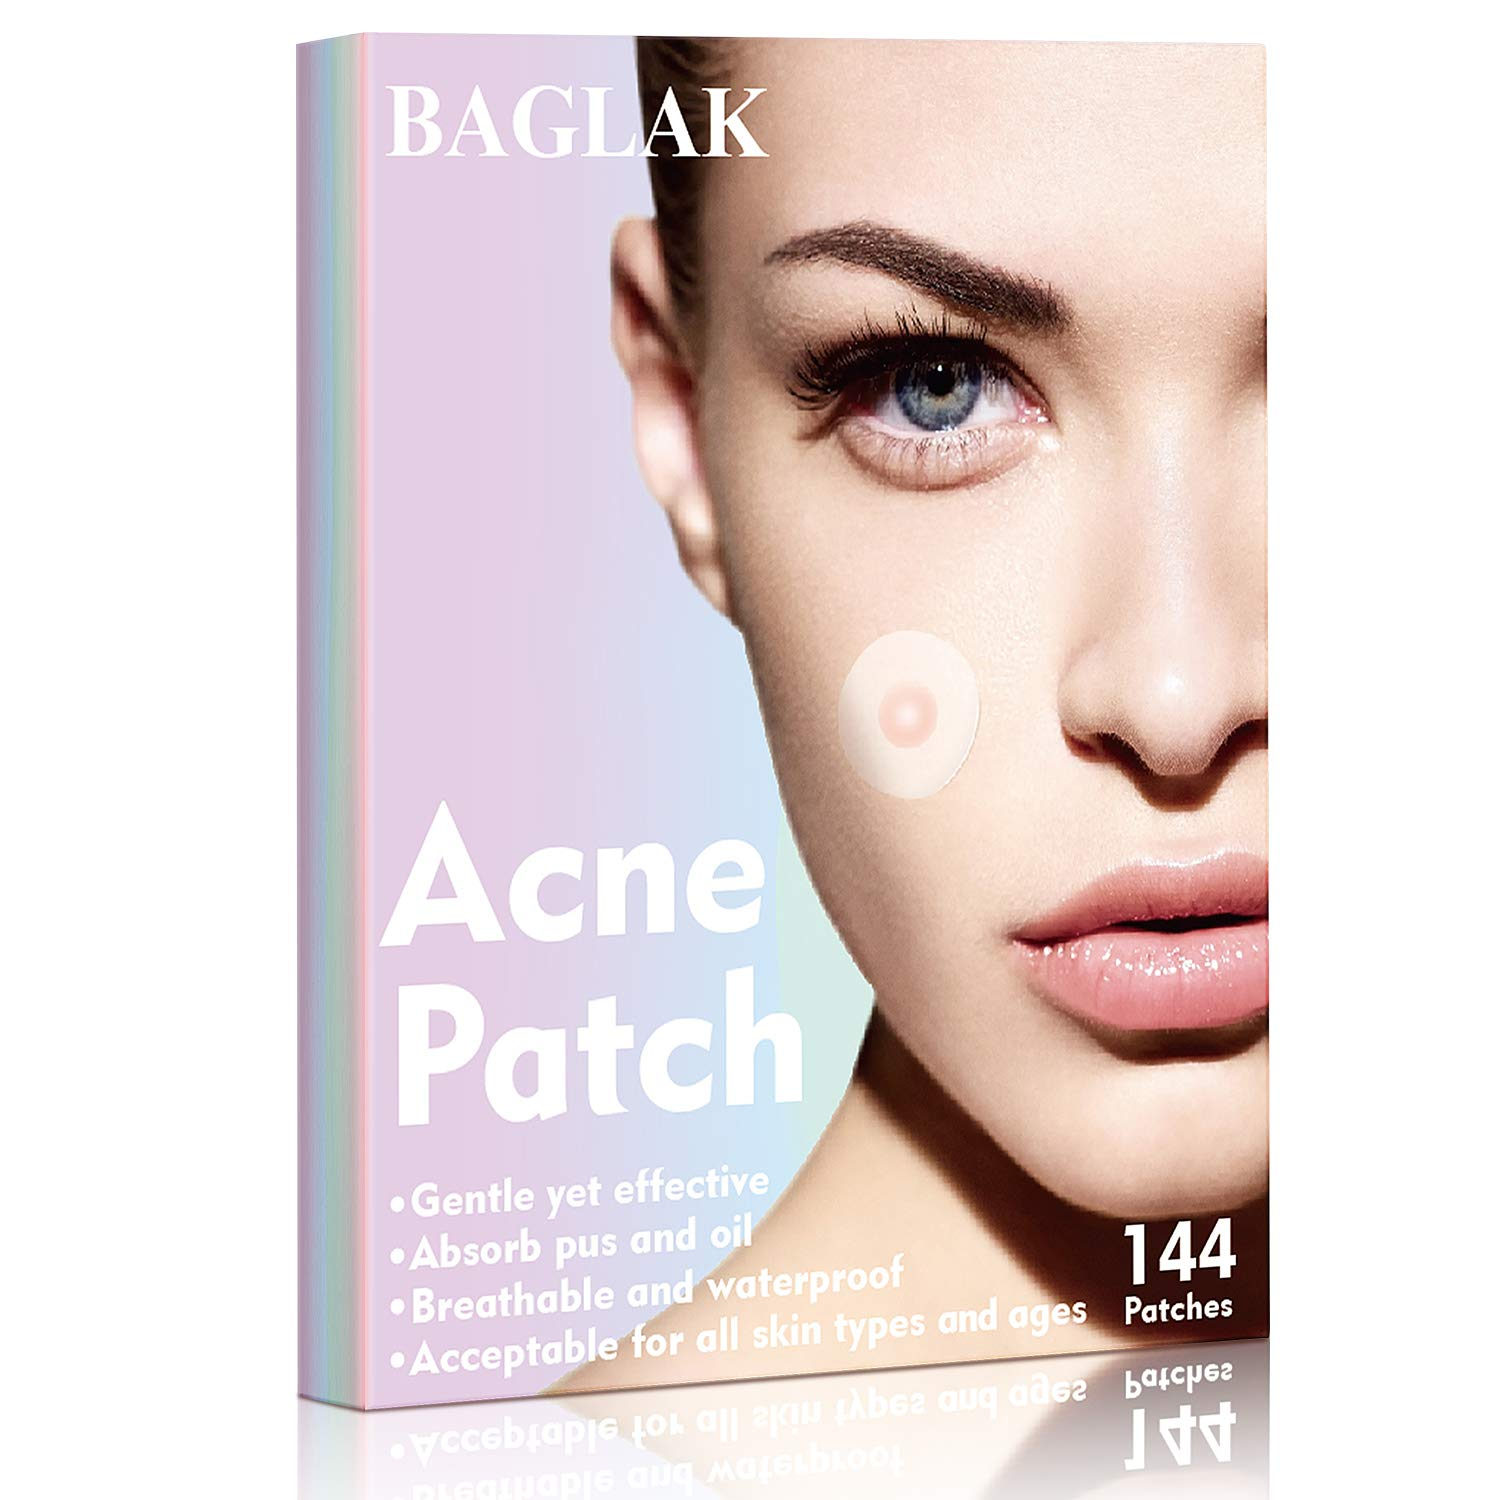 BAGLAK Acne Pimple Master Patch, Efficient And Fast,144 dots with 2 size.Invisible, waterproof, breathable, Facial Stickers.